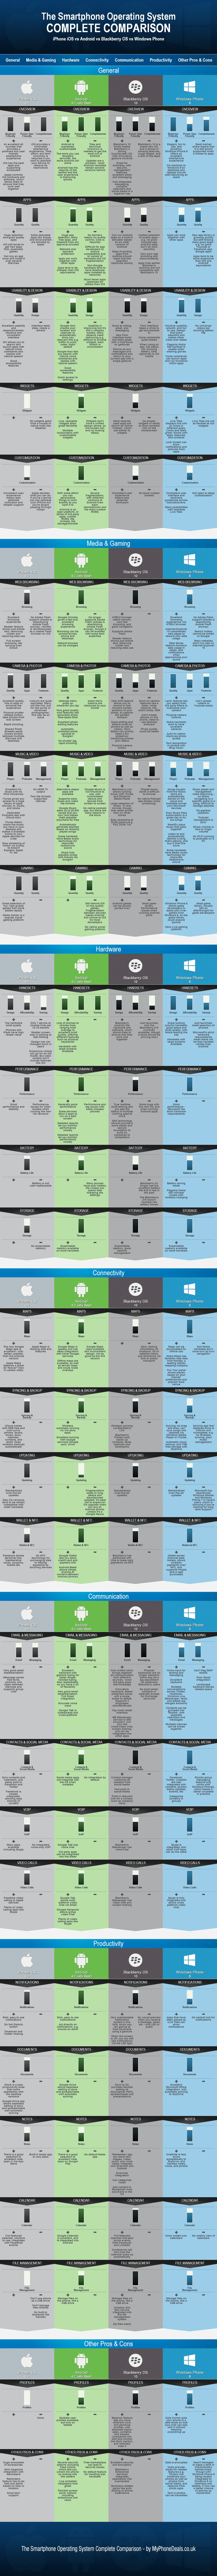 smartphone_os_infographic